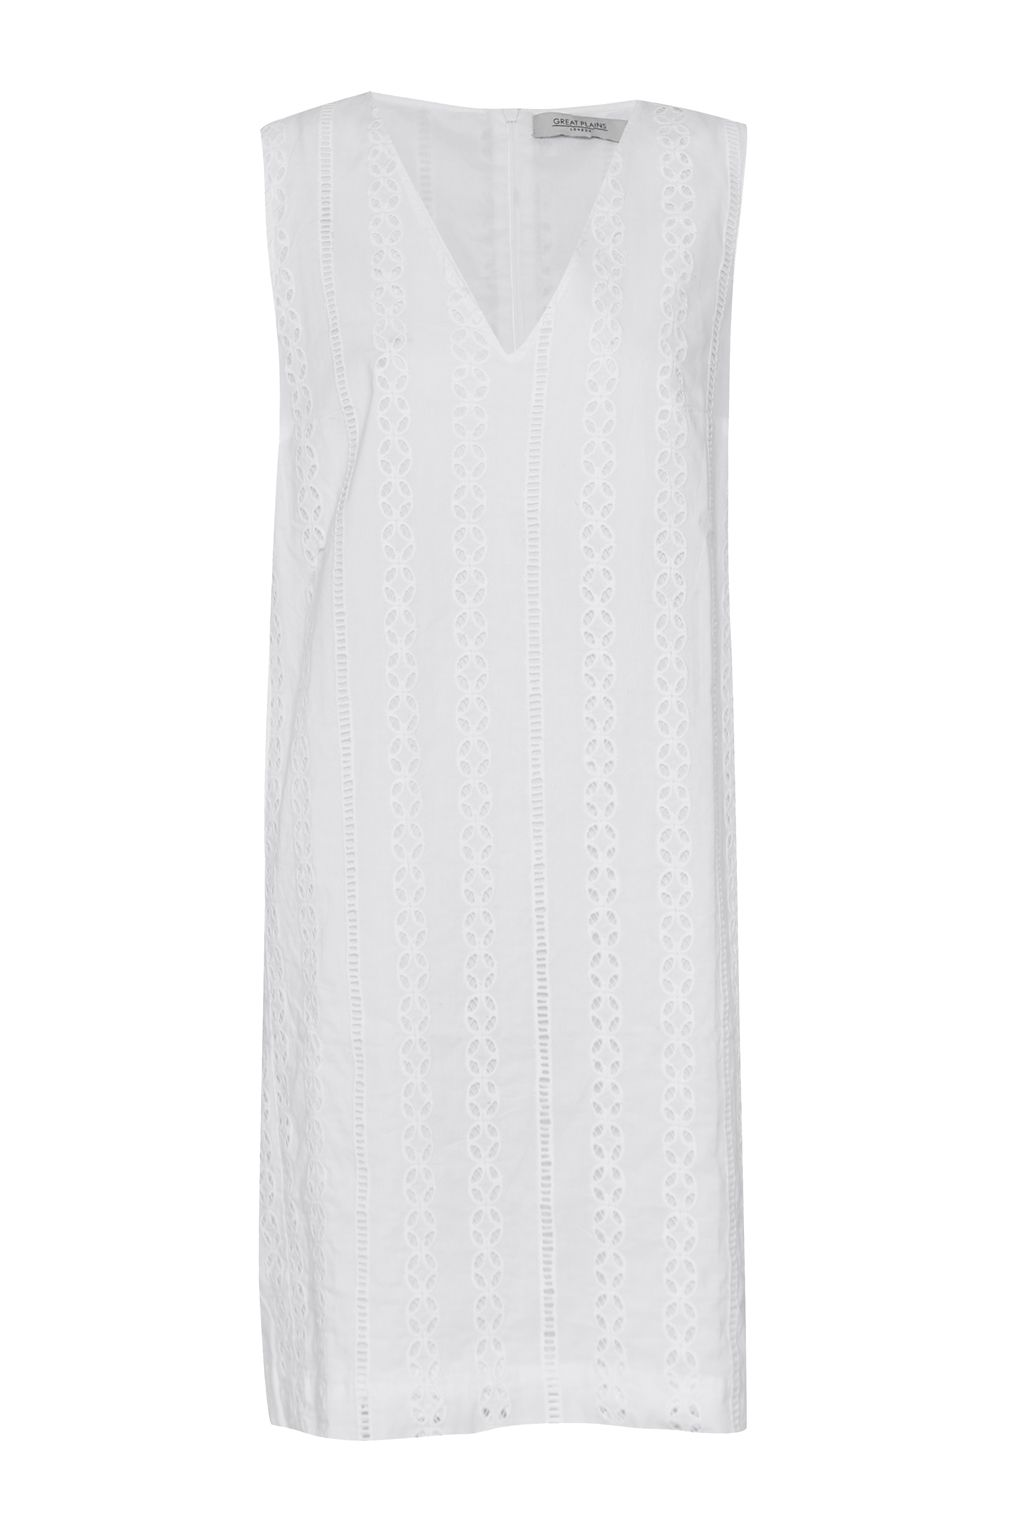 Great Plains Betsy Broidery V Neck Shift Dress, Optic White